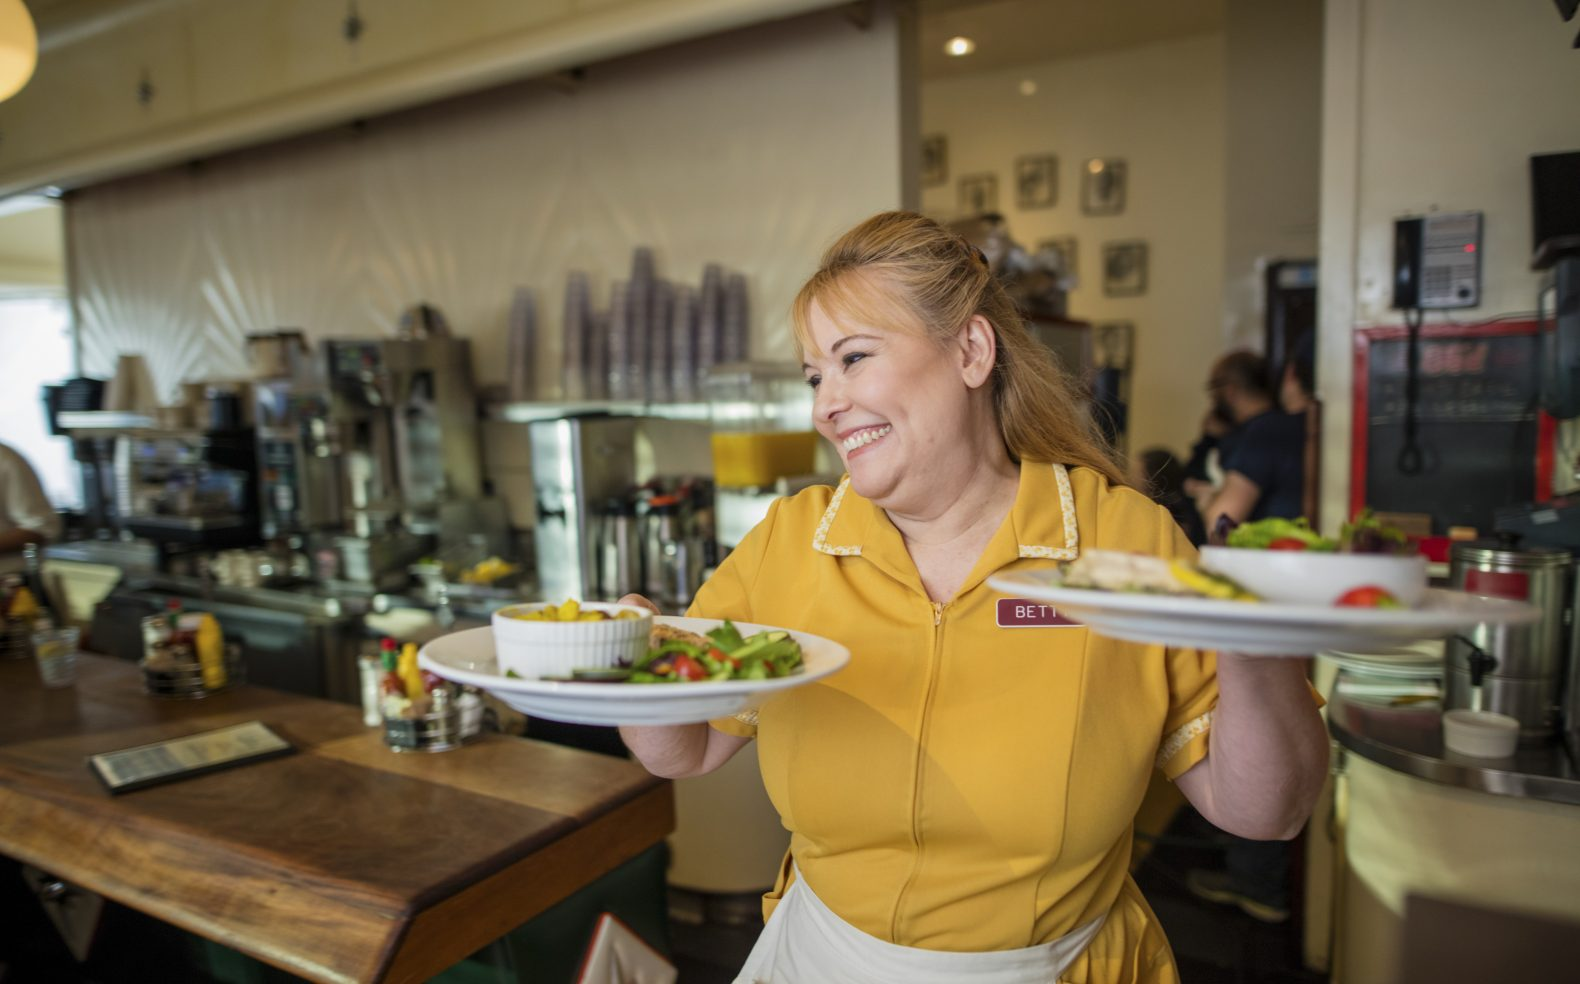 Professional production photograph of a waitress smiling while serving meals at a diner